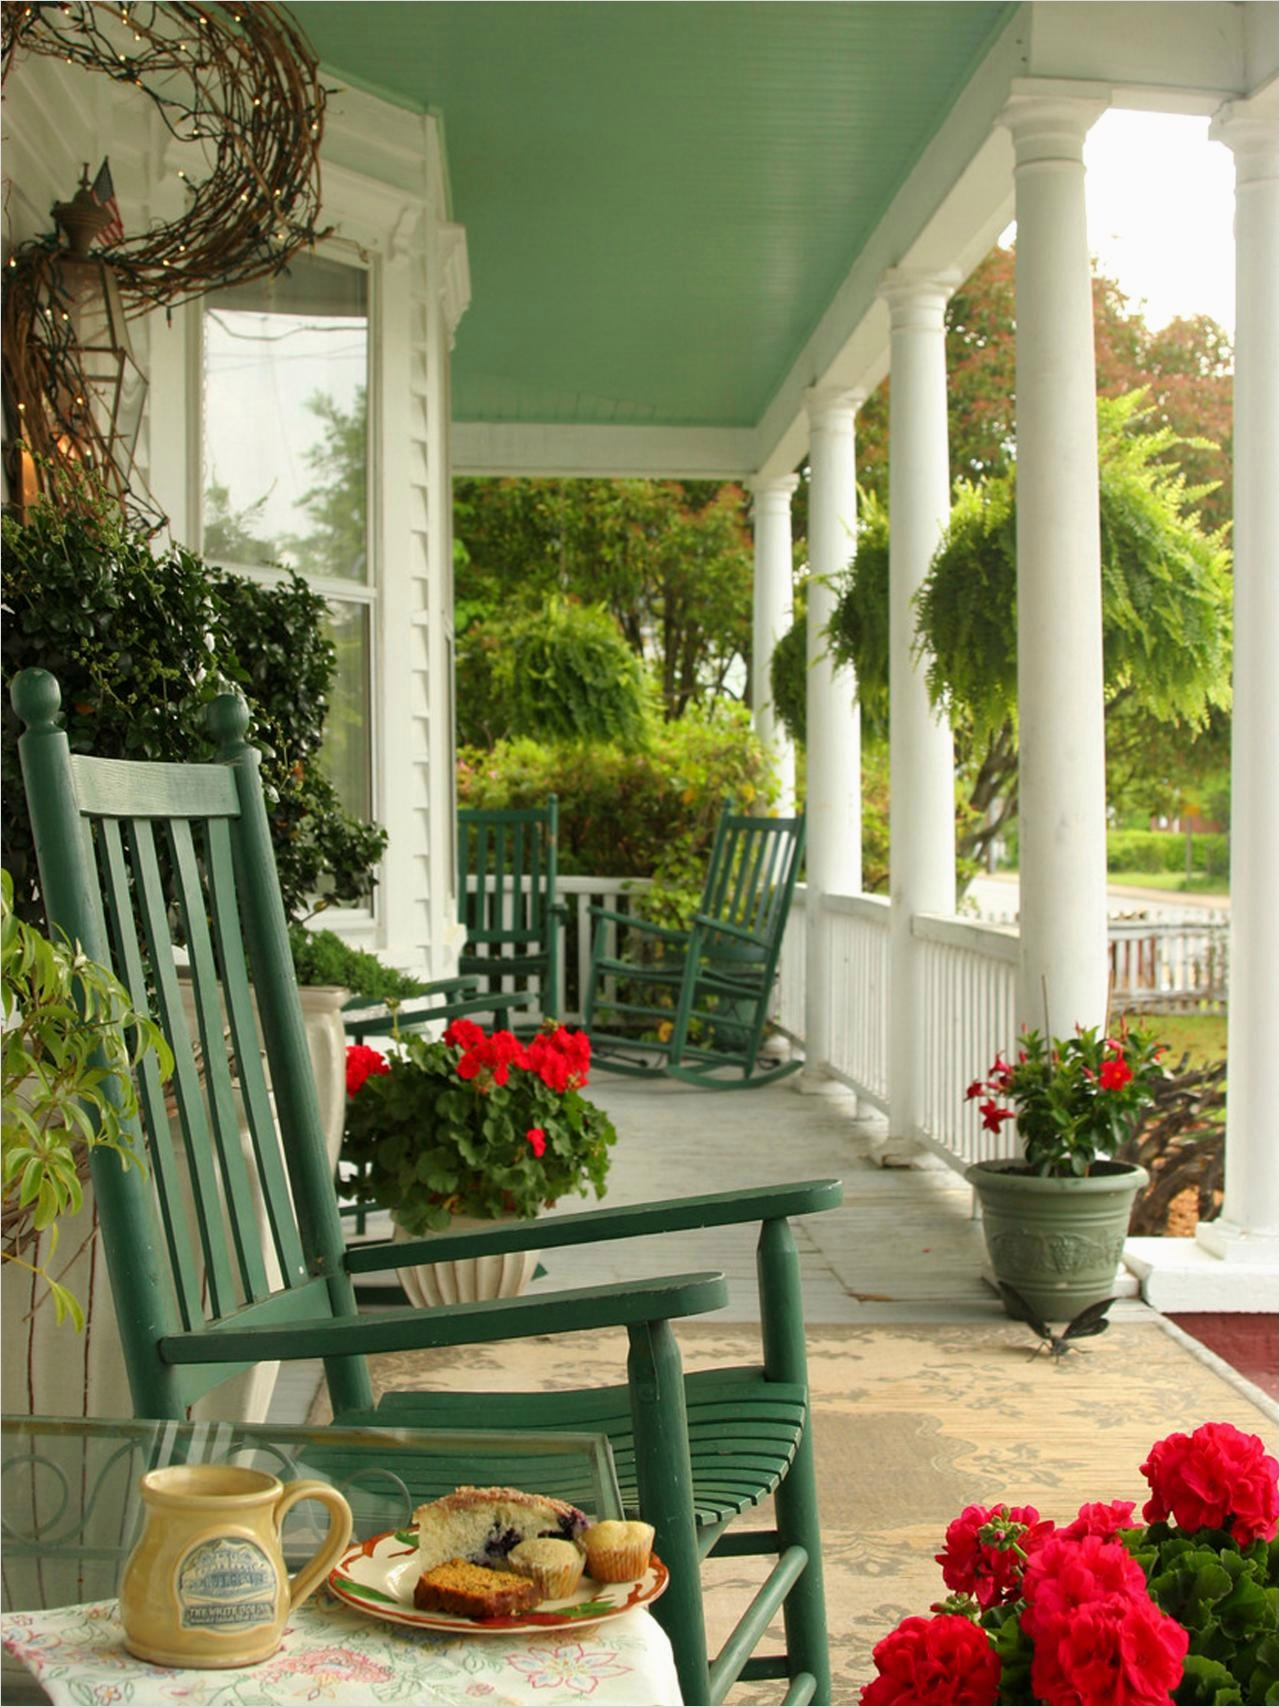 35 Stunning Little Porch Decorating Ideas for 2020 47